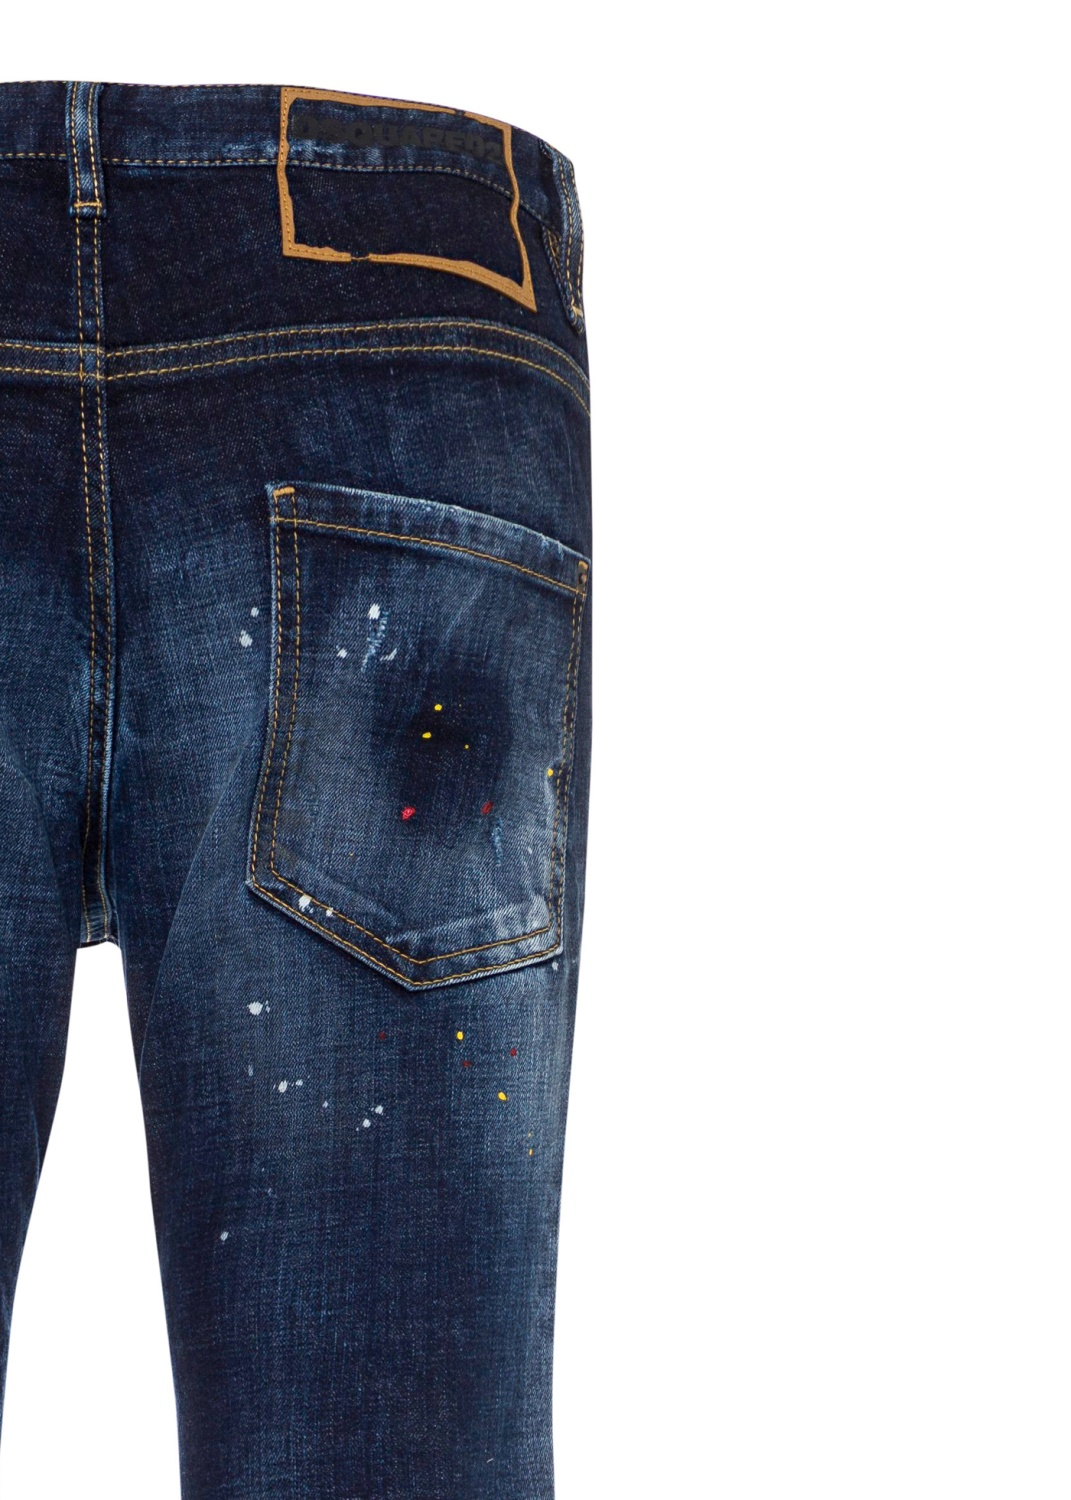 PANTS 5 POCKETS image number 3